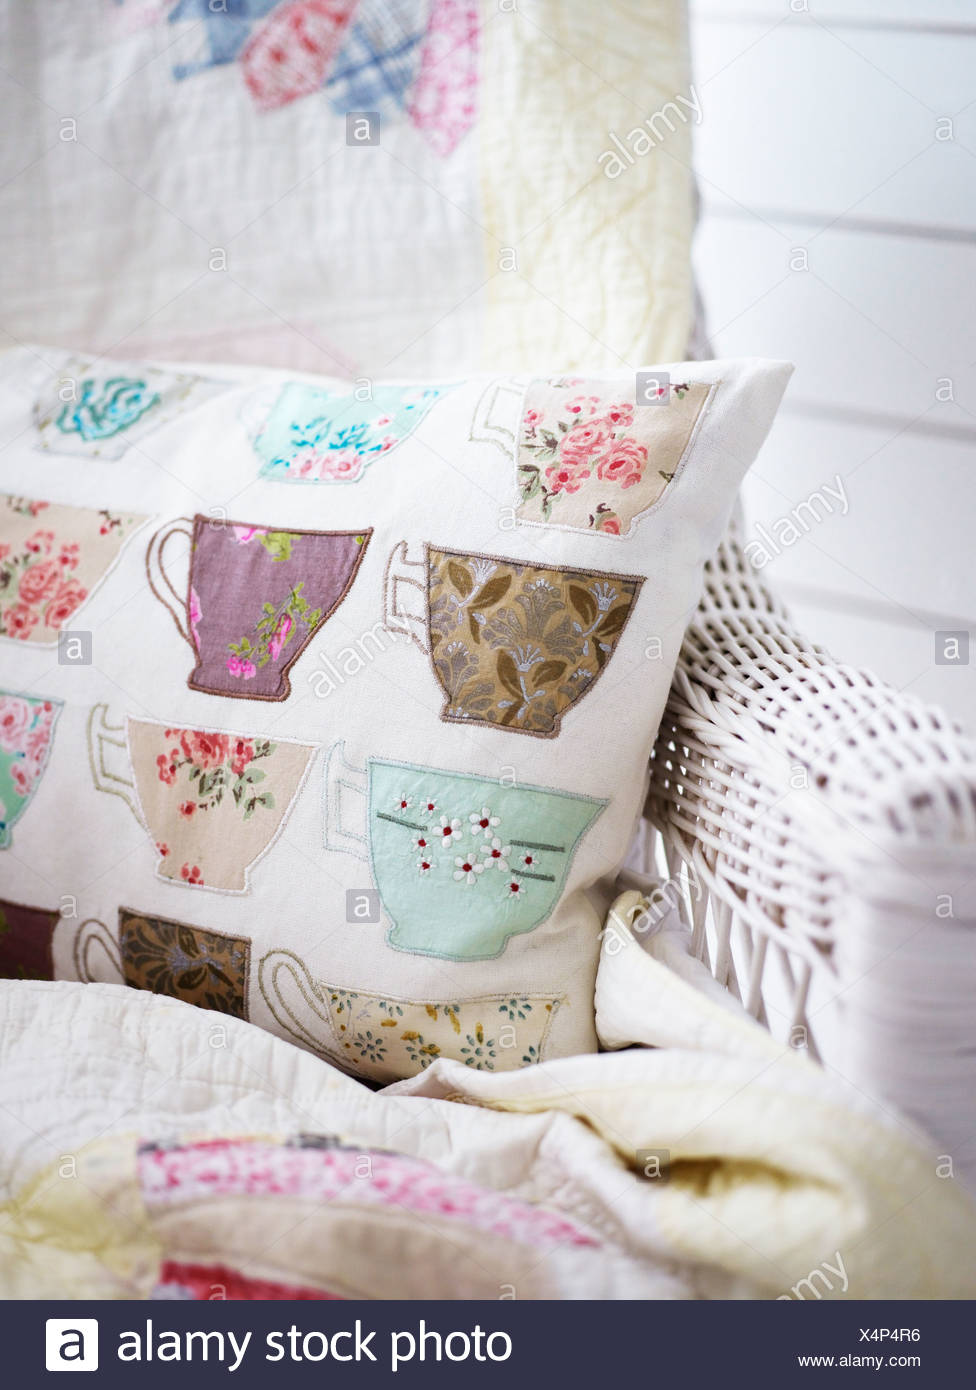 Scandinavia, Sweden, Stockholm, Pillow with cup print, close-up - Stock Image